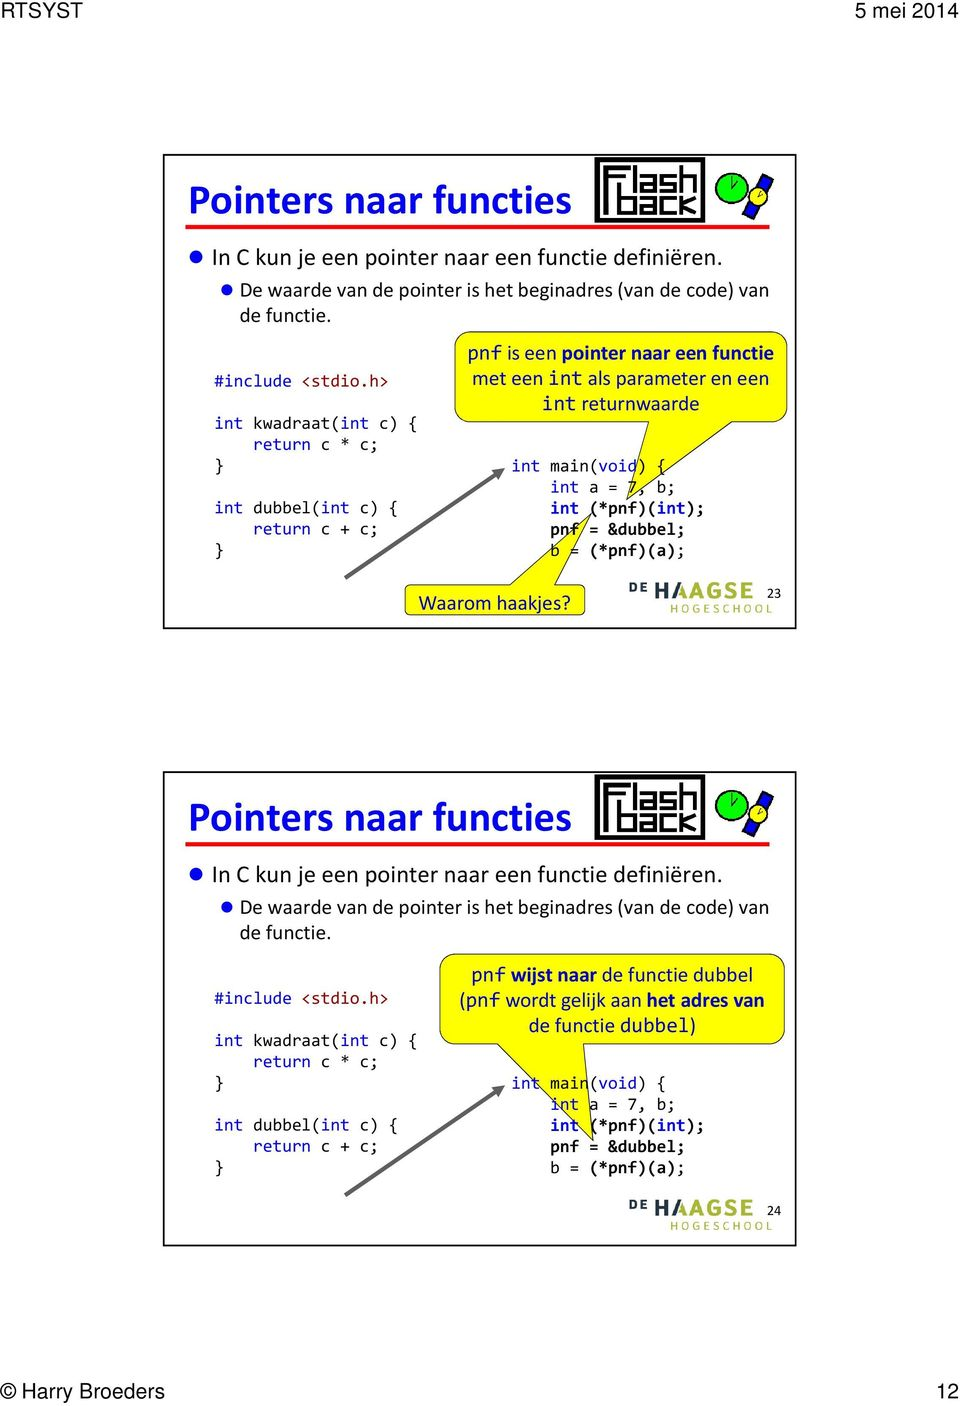 (*pnf)(int); pnf = &dubbel; b = (*pnf)(a); Waarom haakjes?